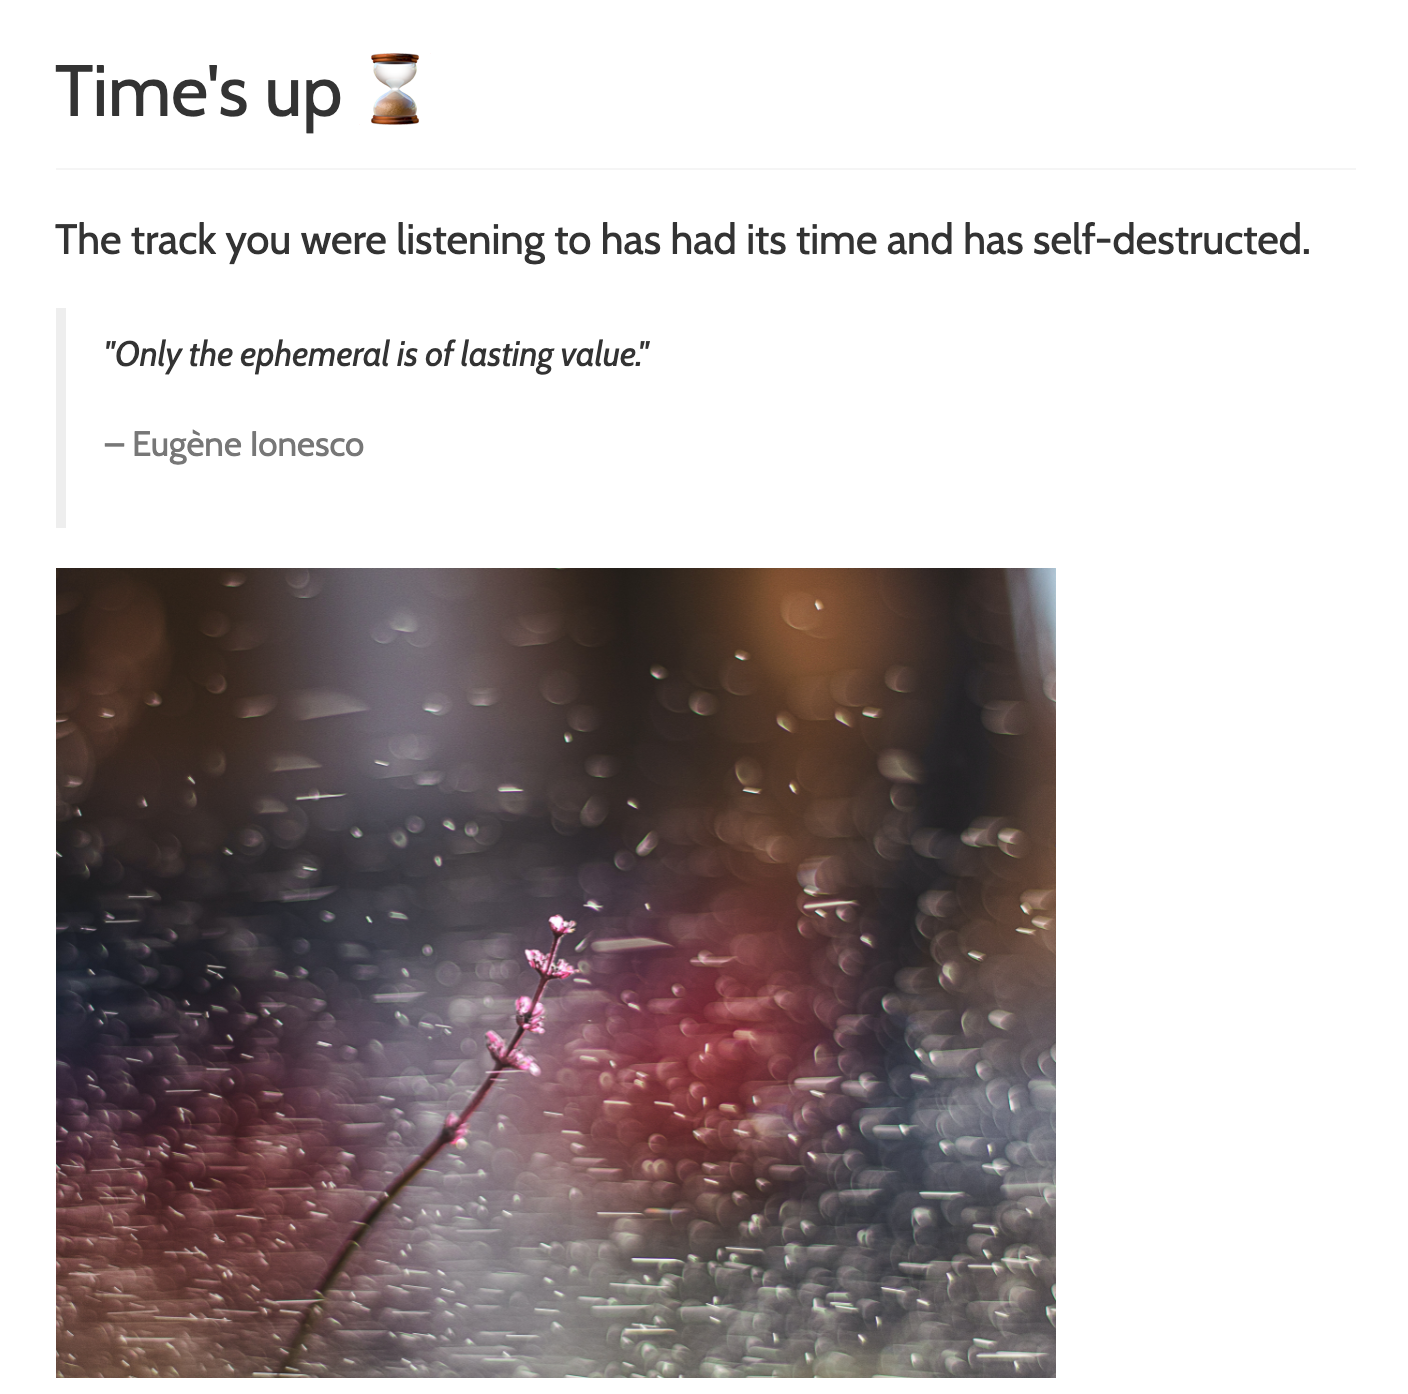 You'll get a 'Time's up' page if you try to access the track a second time.